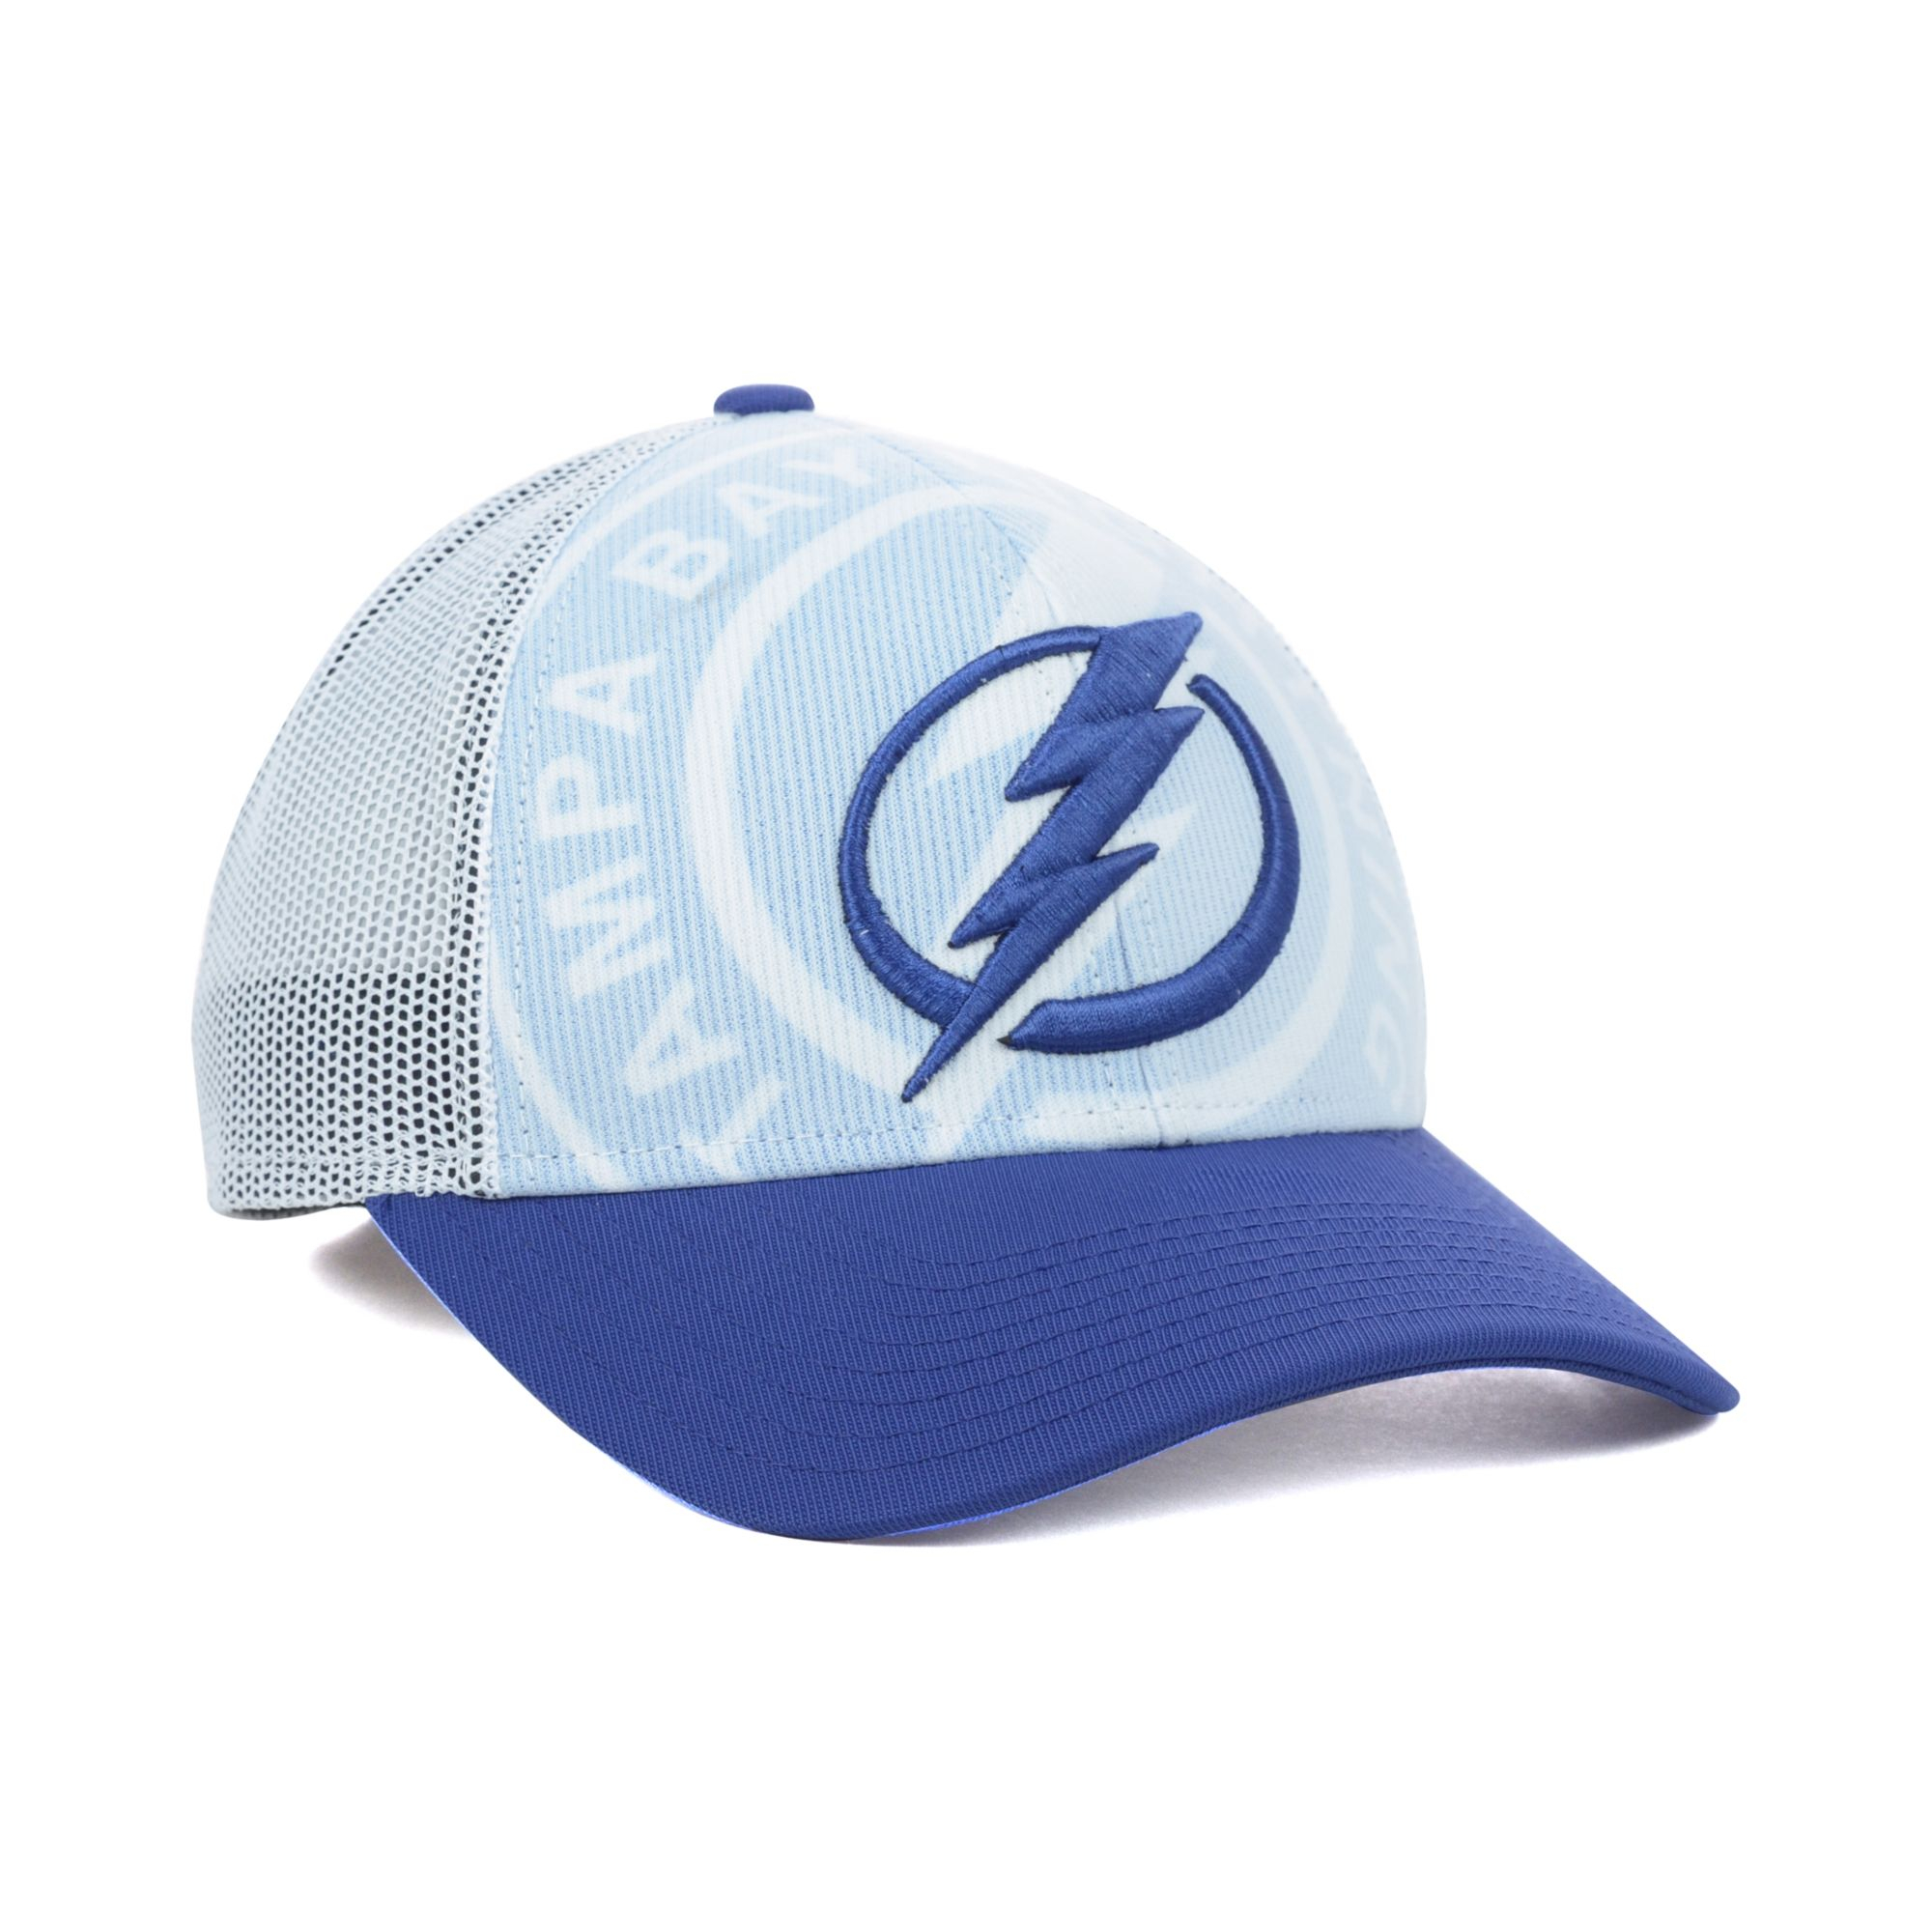 timeless design 61b2f 32bc2 ... where to buy lyst reebok tampa bay lightning nhl draft cap in blue for  men c29f9